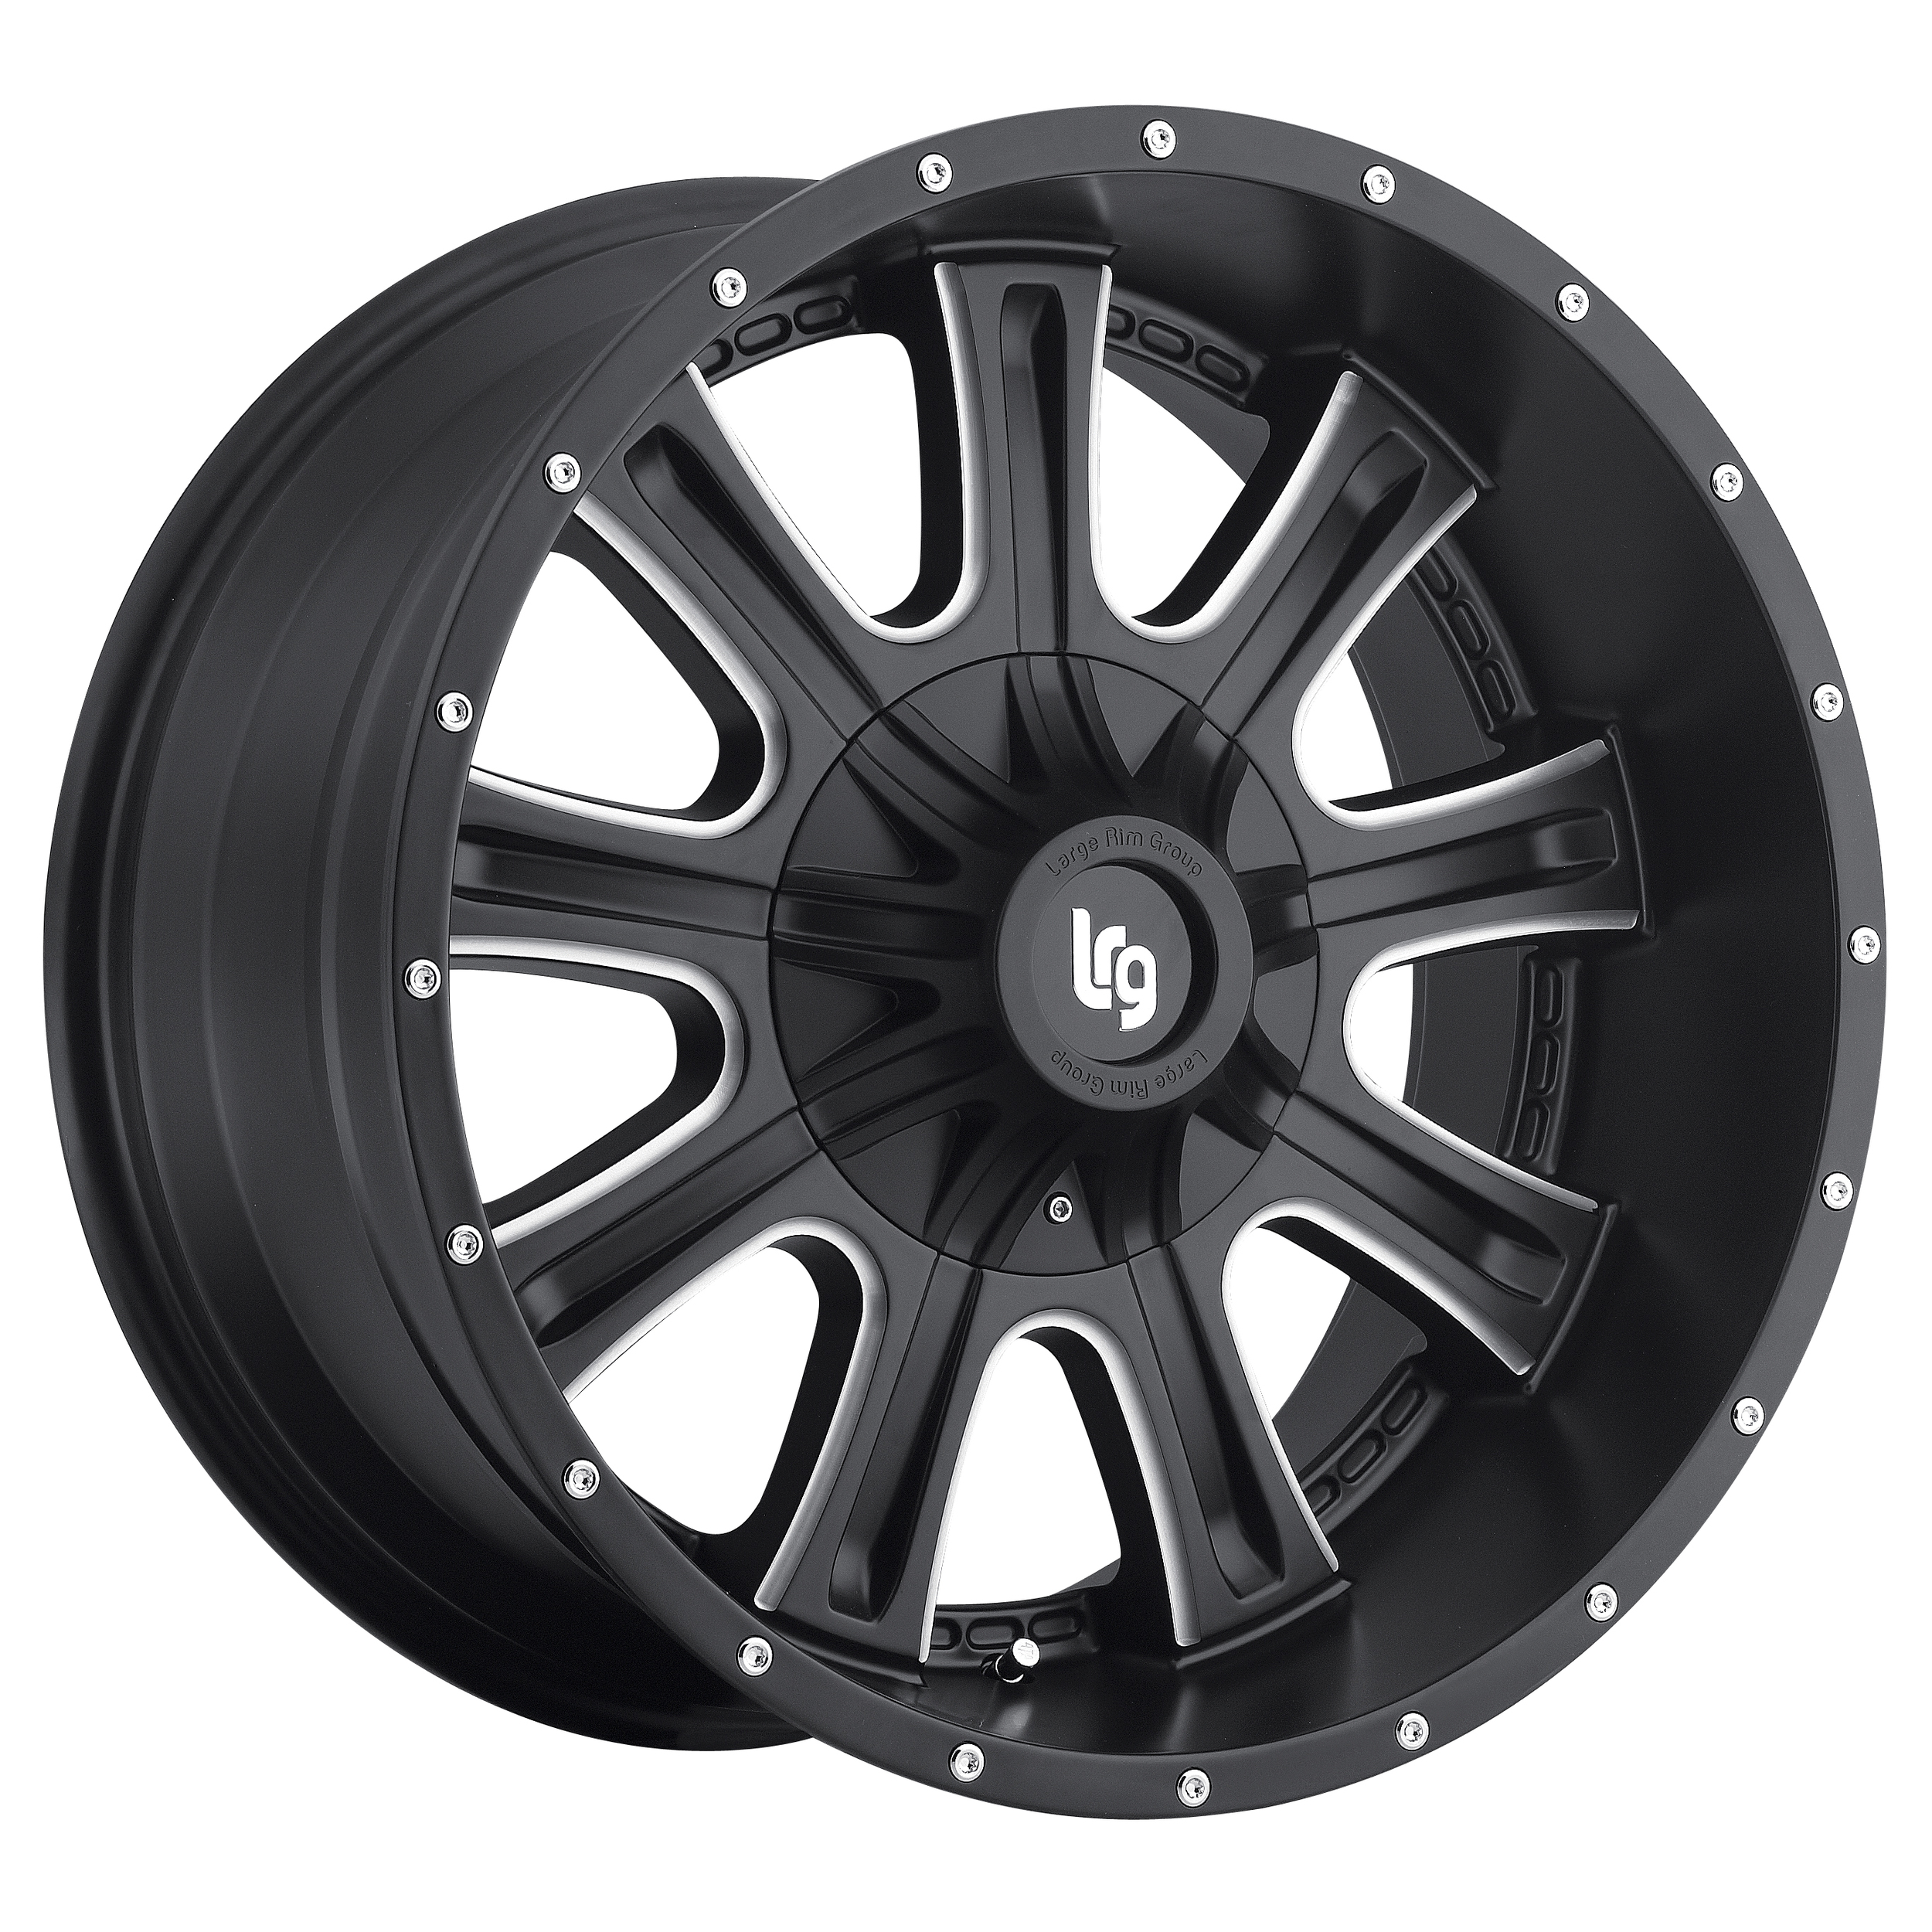 LRG Rims Series 105 Black Machined Wheels